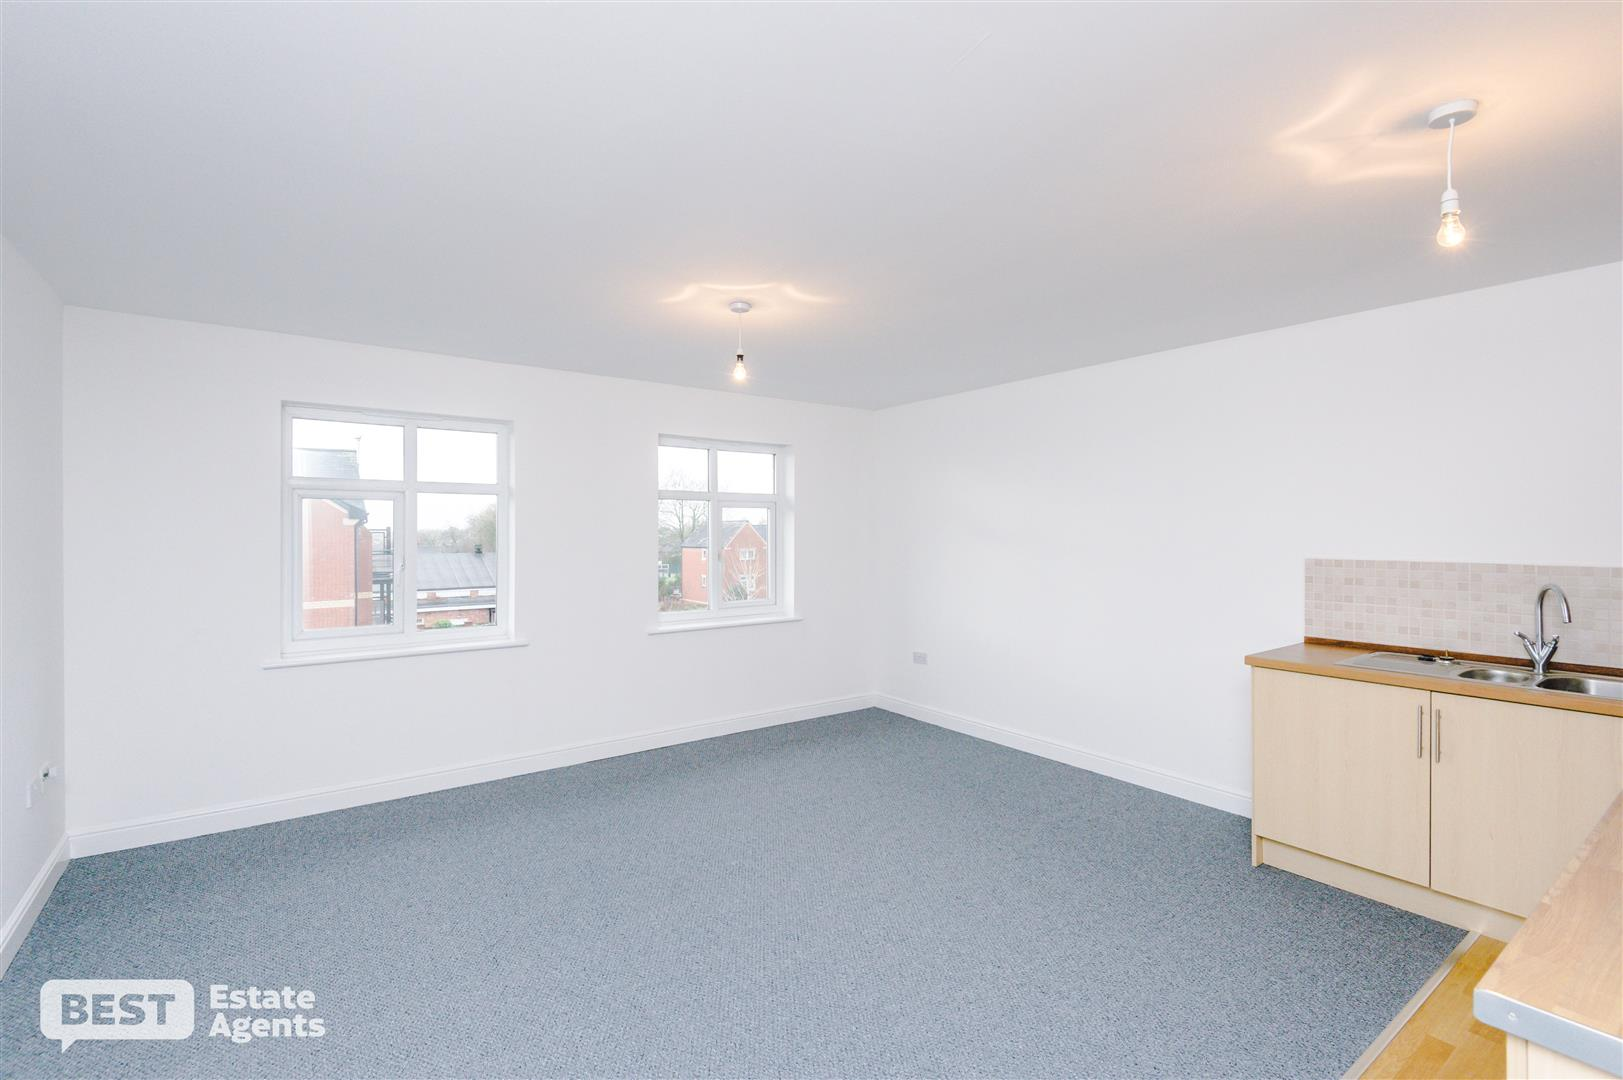 Pendle Court, Leigh, Greater Manchester BEST Estate Agents